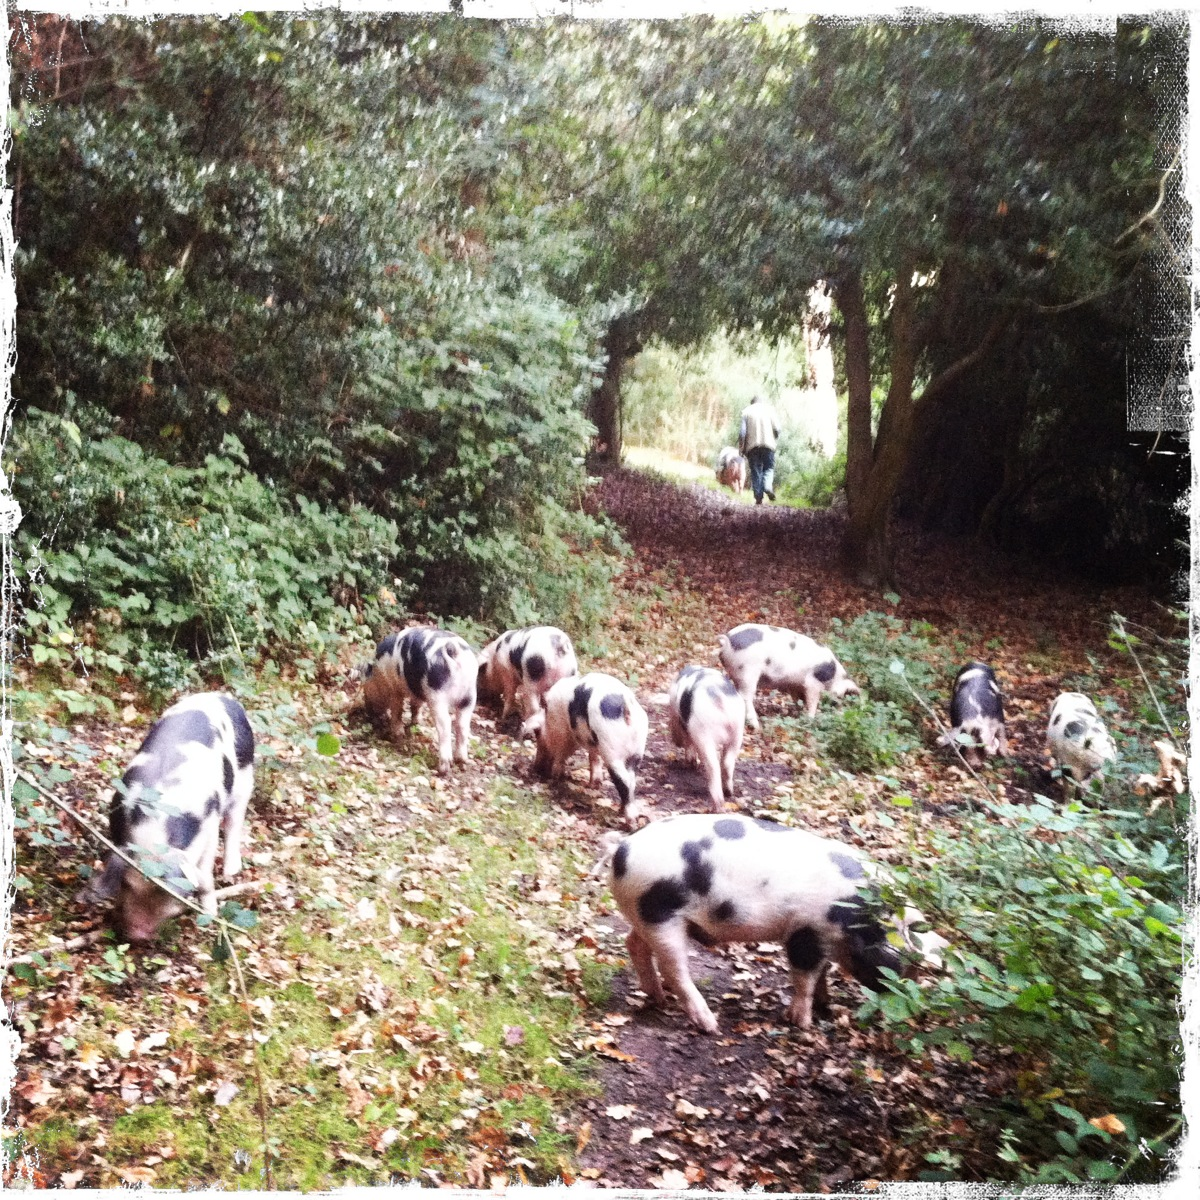 The pigs exploring the forest